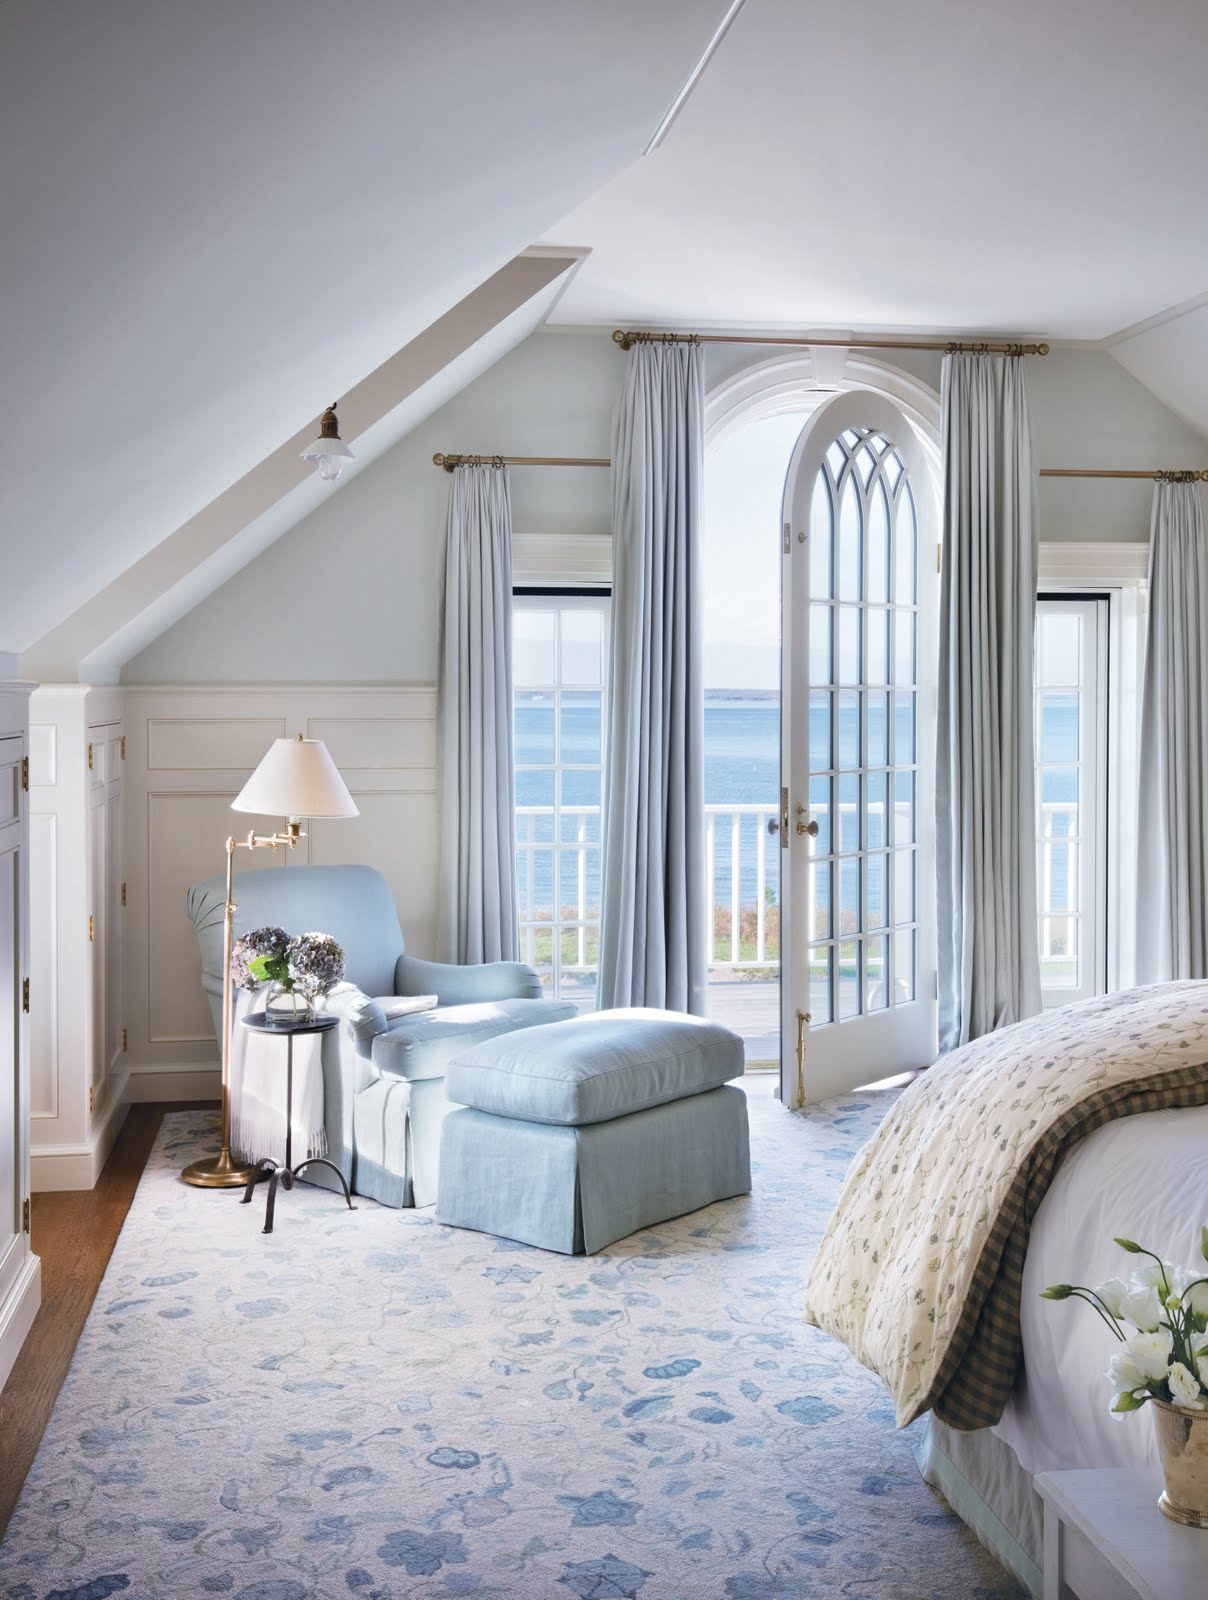 Madison Muse Victoria Hagen Interiors: beach house master bedroom ideas